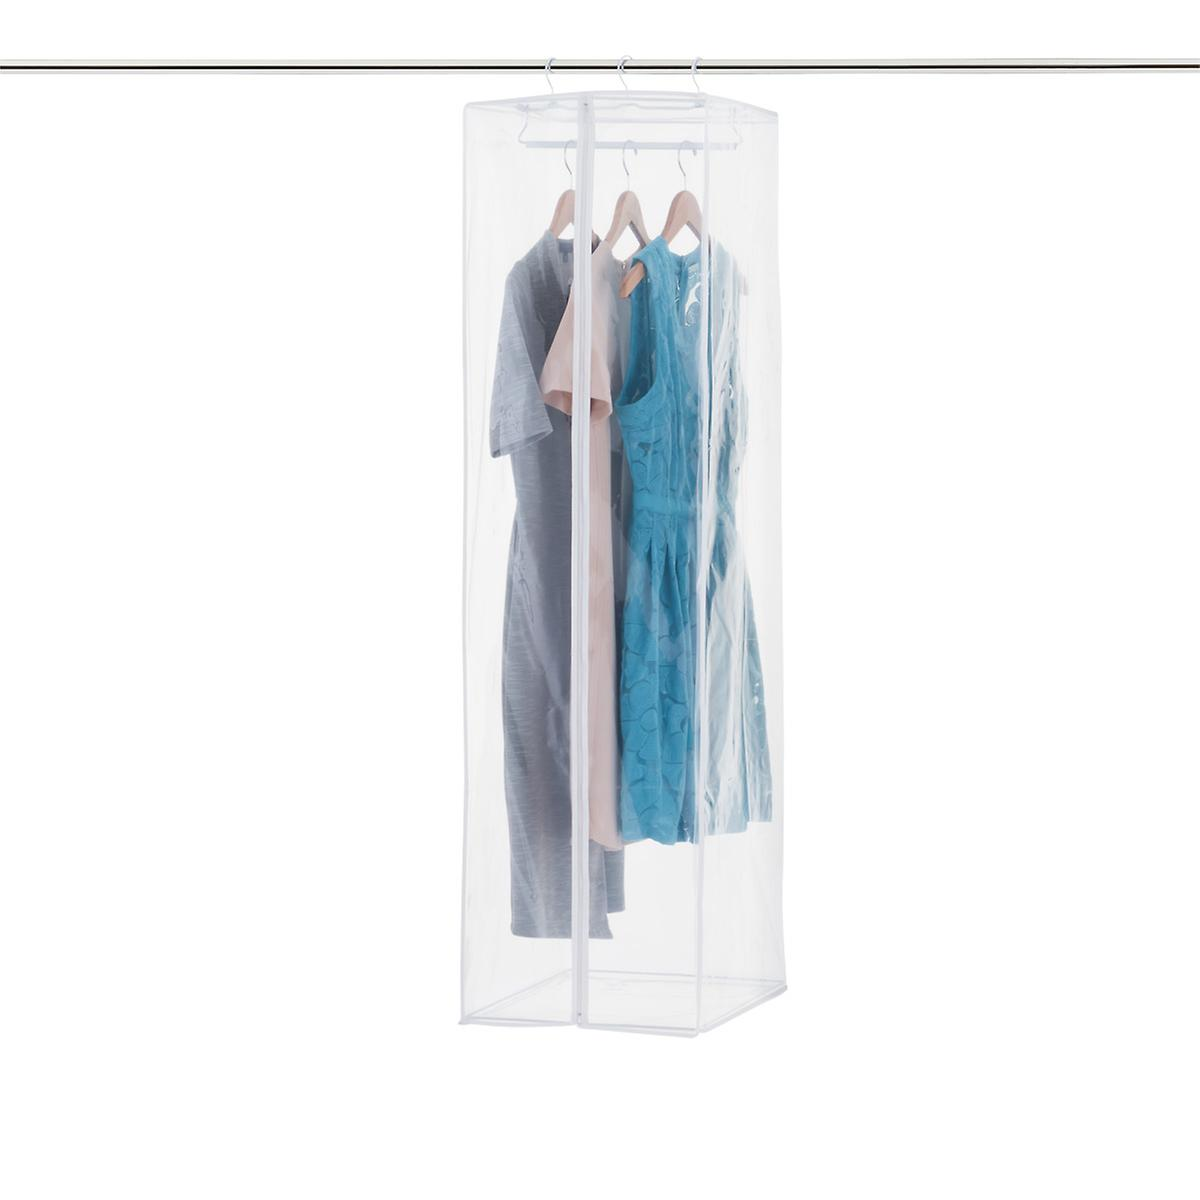 6c477111eaf45 PEVA Hanging Storage Bags | The Container Store